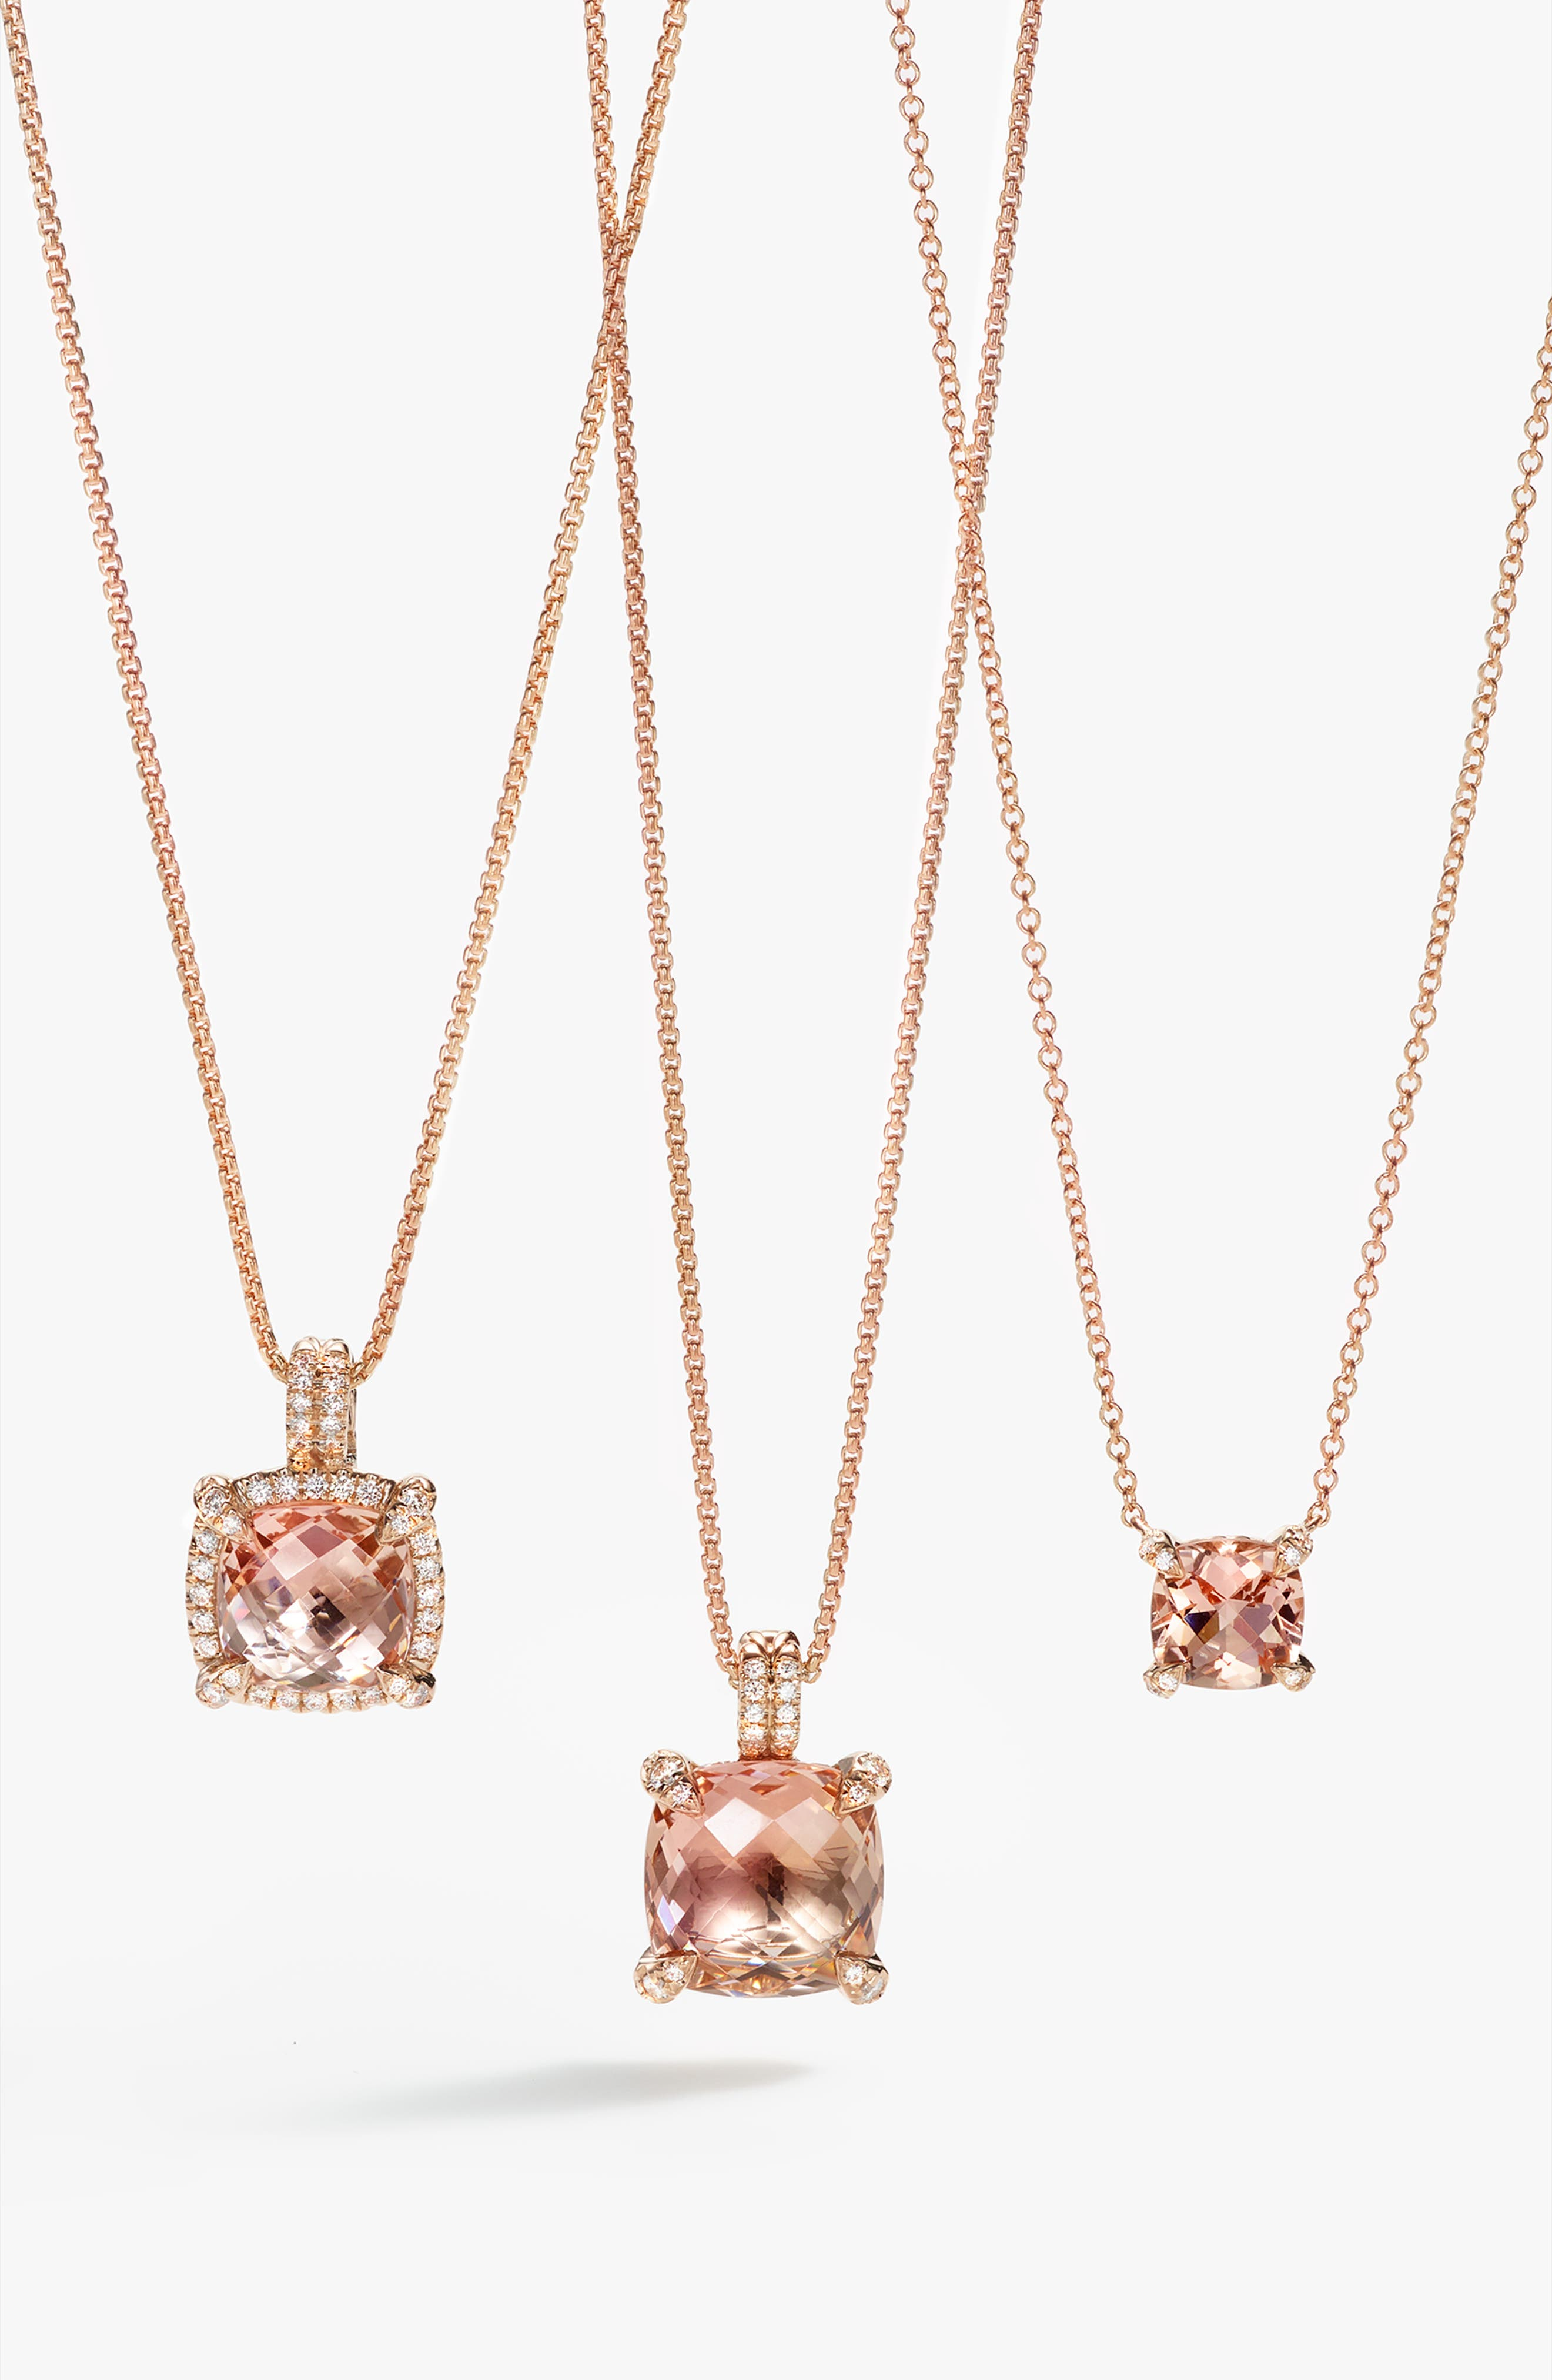 Châtelaine Pavé Bezel Pendant Necklace with Morganite and Diamonds in 18K Rose Gold,                             Alternate thumbnail 3, color,                             ROSE GOLD/ DIAMOND/ MORGANITE